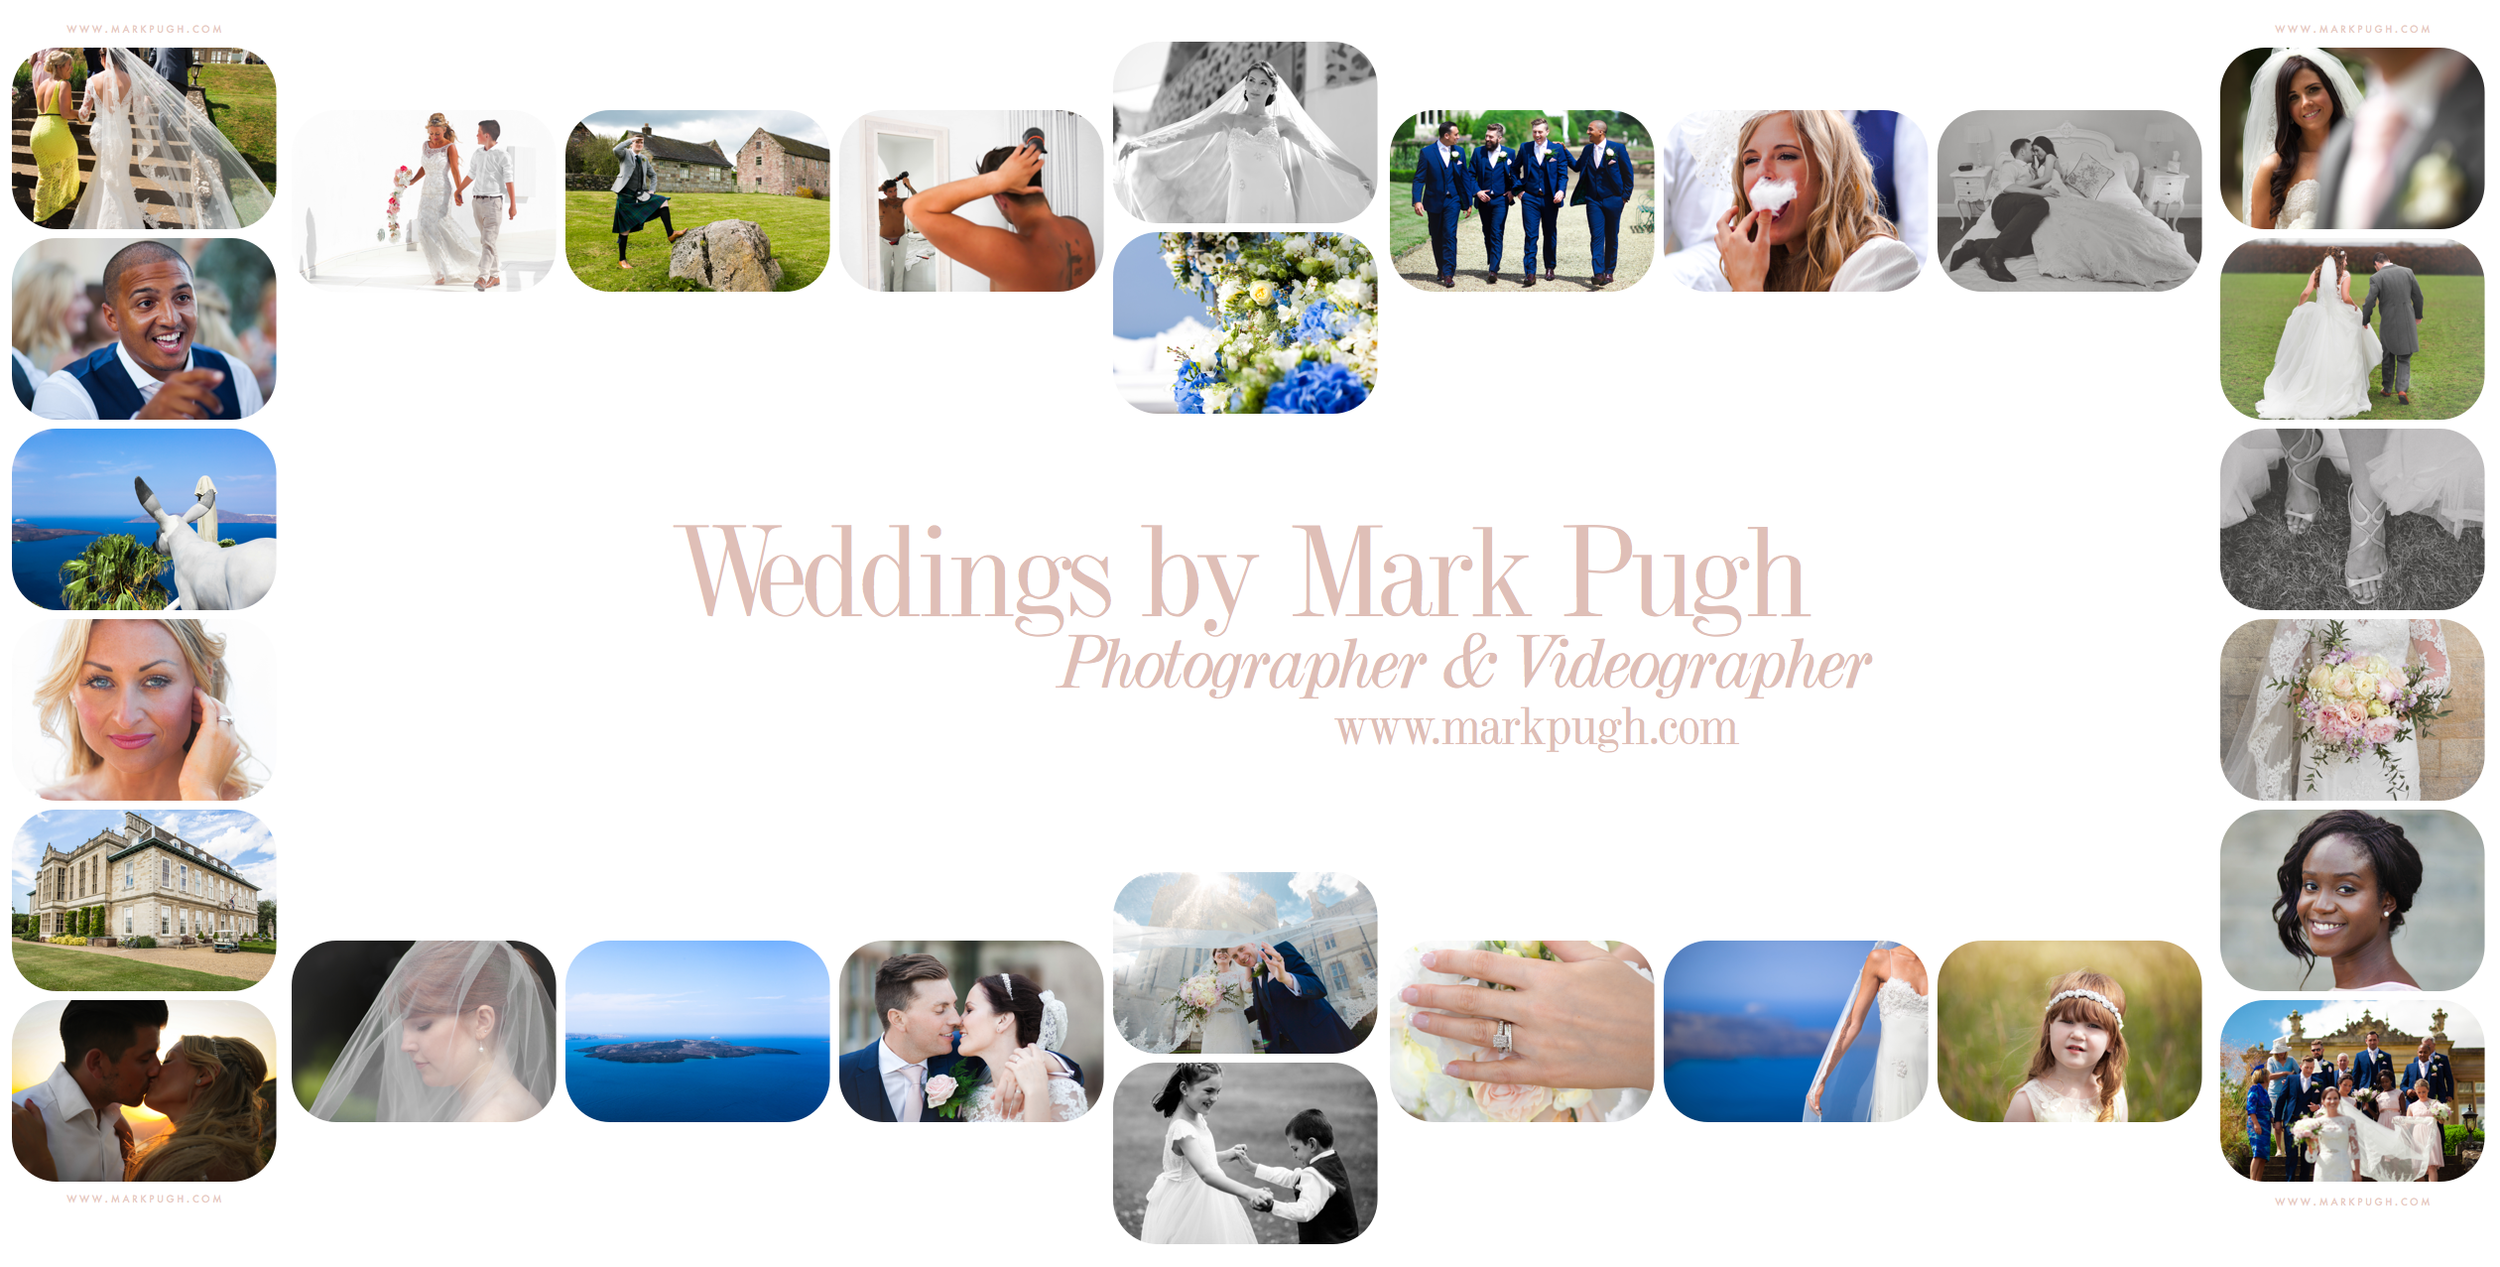 Click the image above to view Mark Pugh's 2015 wedding image review.